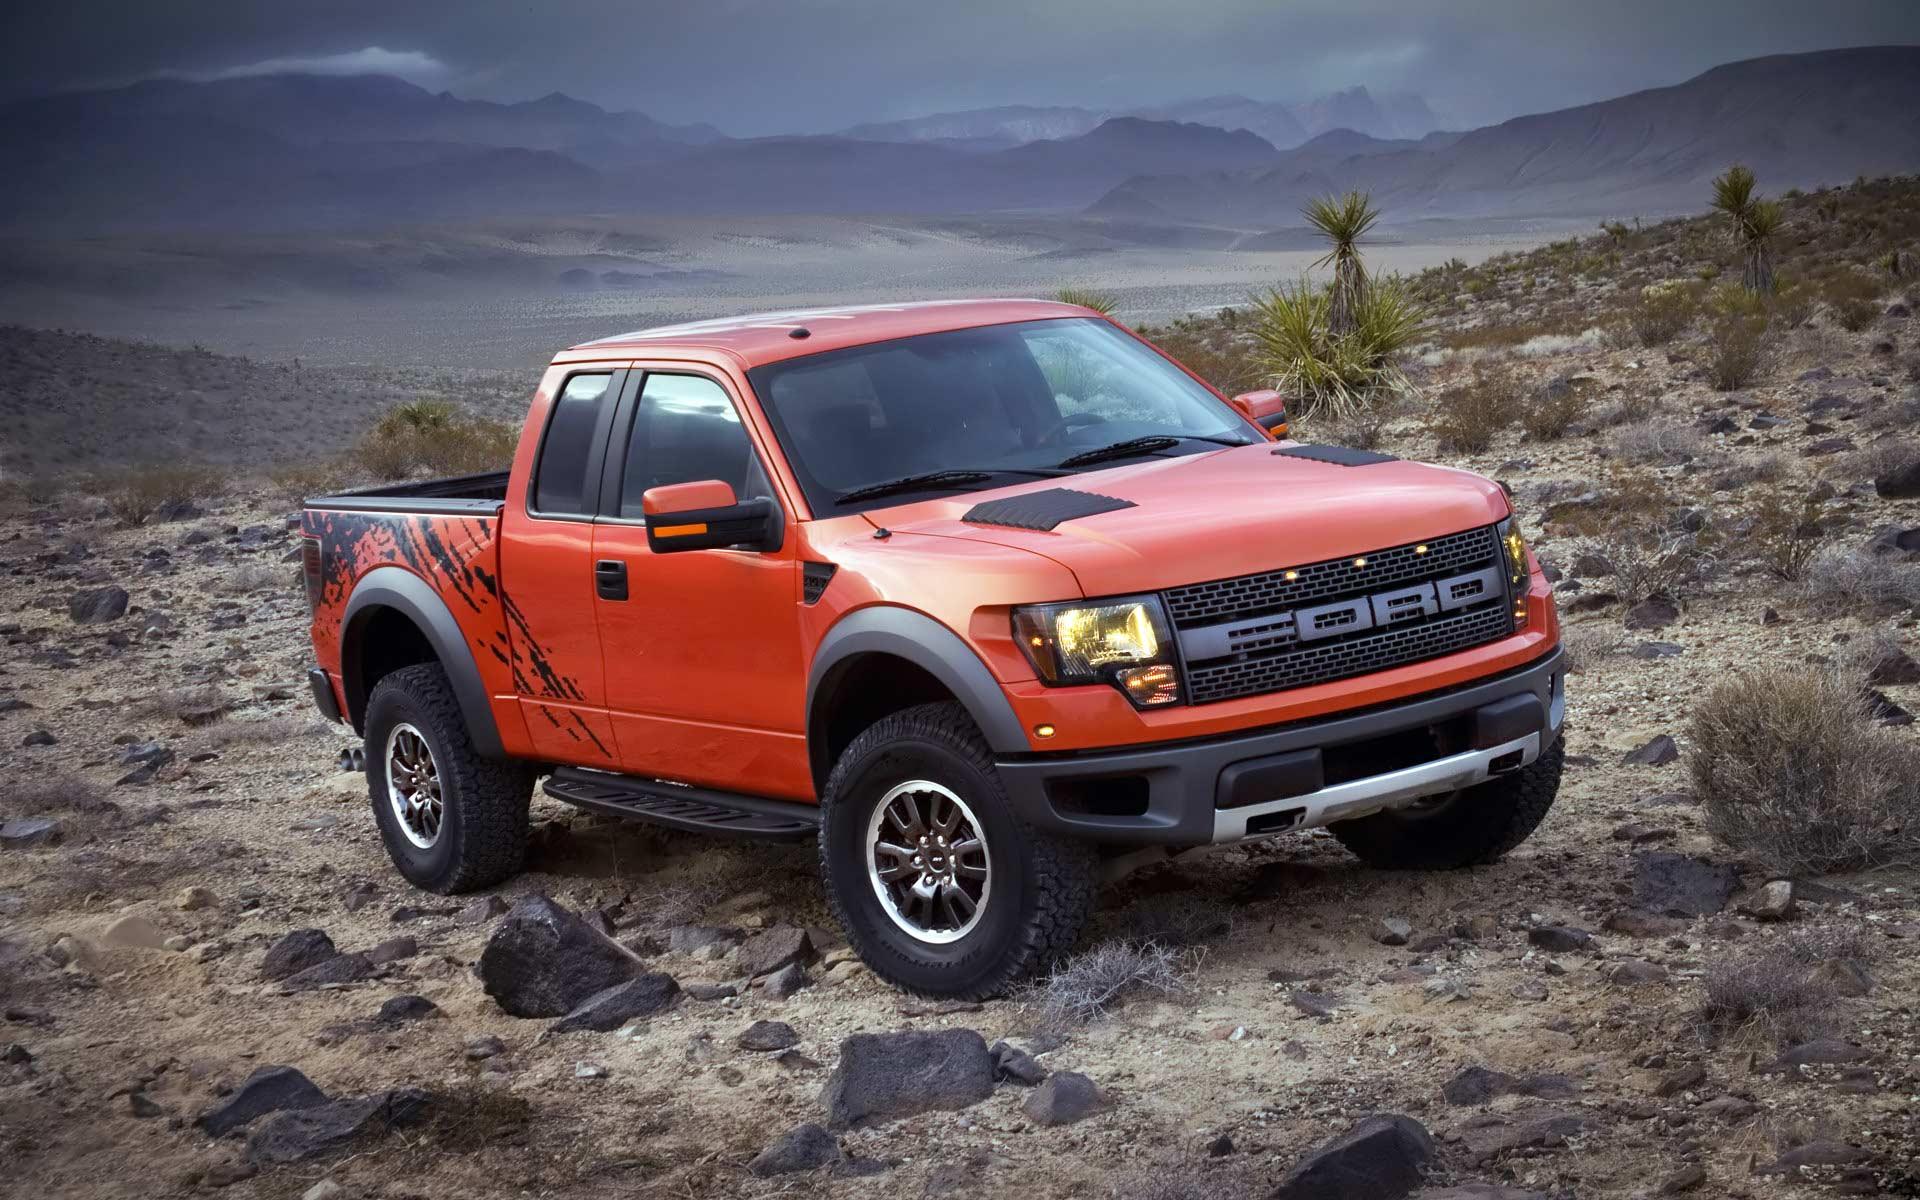 Ford Truck HD Wallpapers Ford Truck Pictures 1920x1200